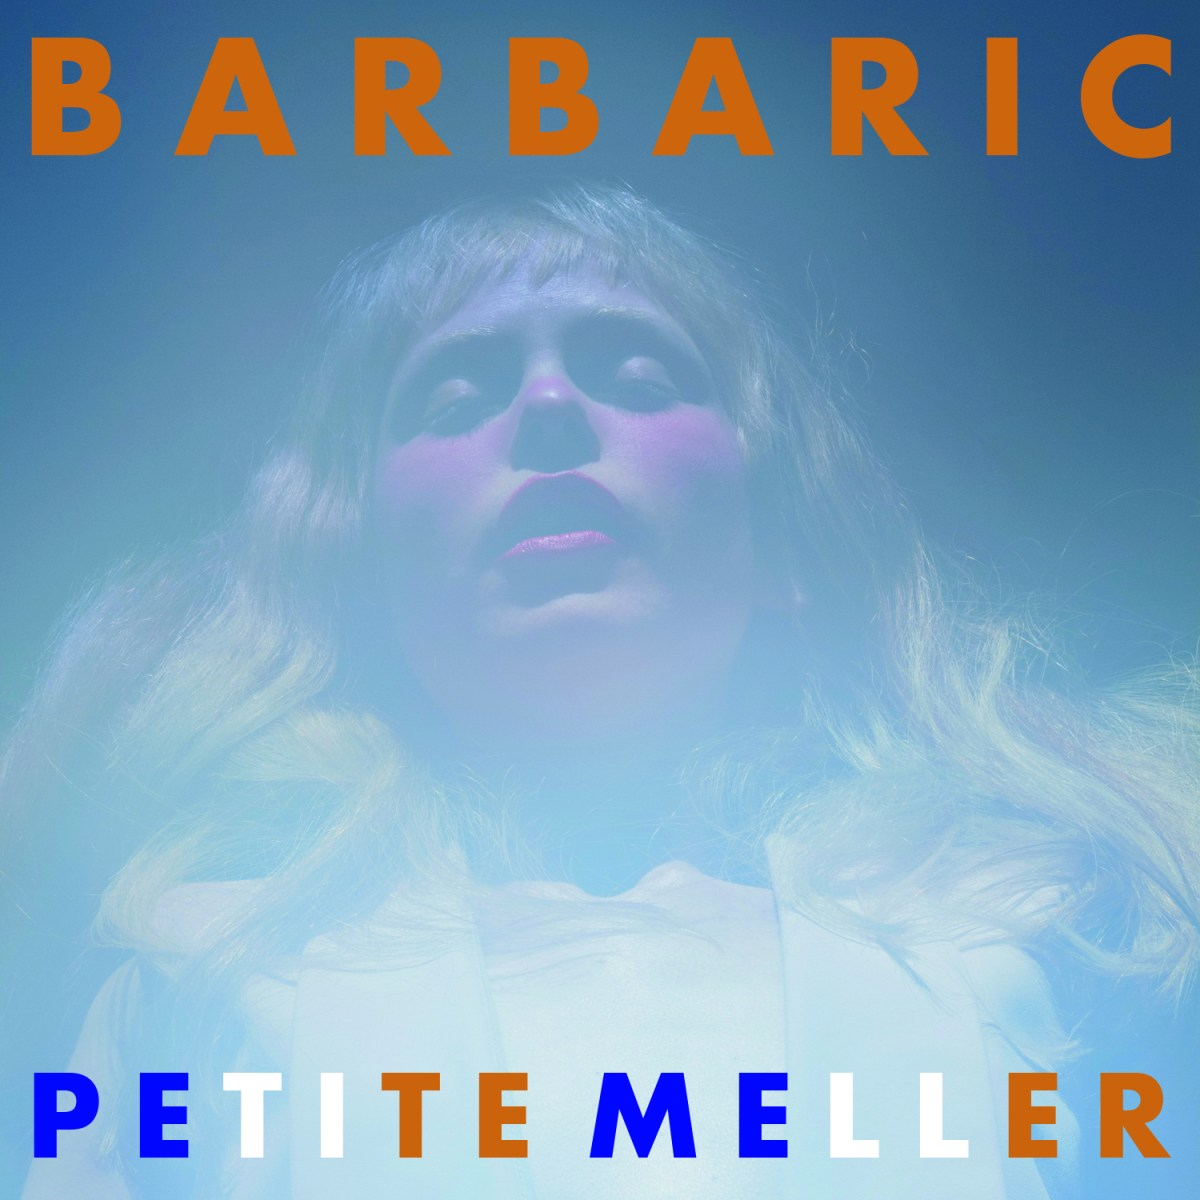 Listen To This: Petite Meller - Barbaric